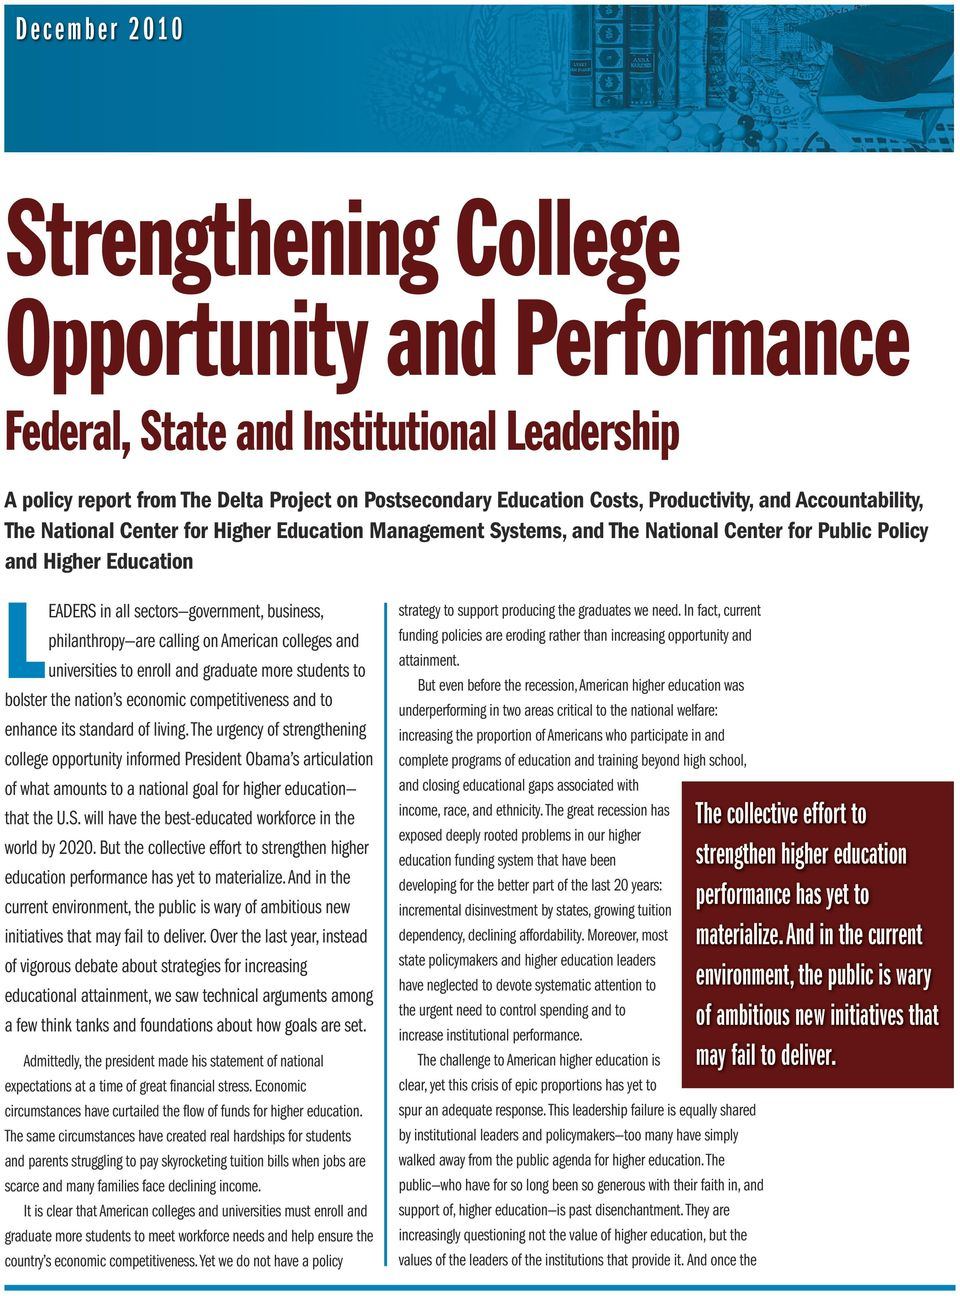 are calling on American colleges and universities to enroll and graduate more students to bolster the nation s economic competitiveness and to enhance its standard of living.